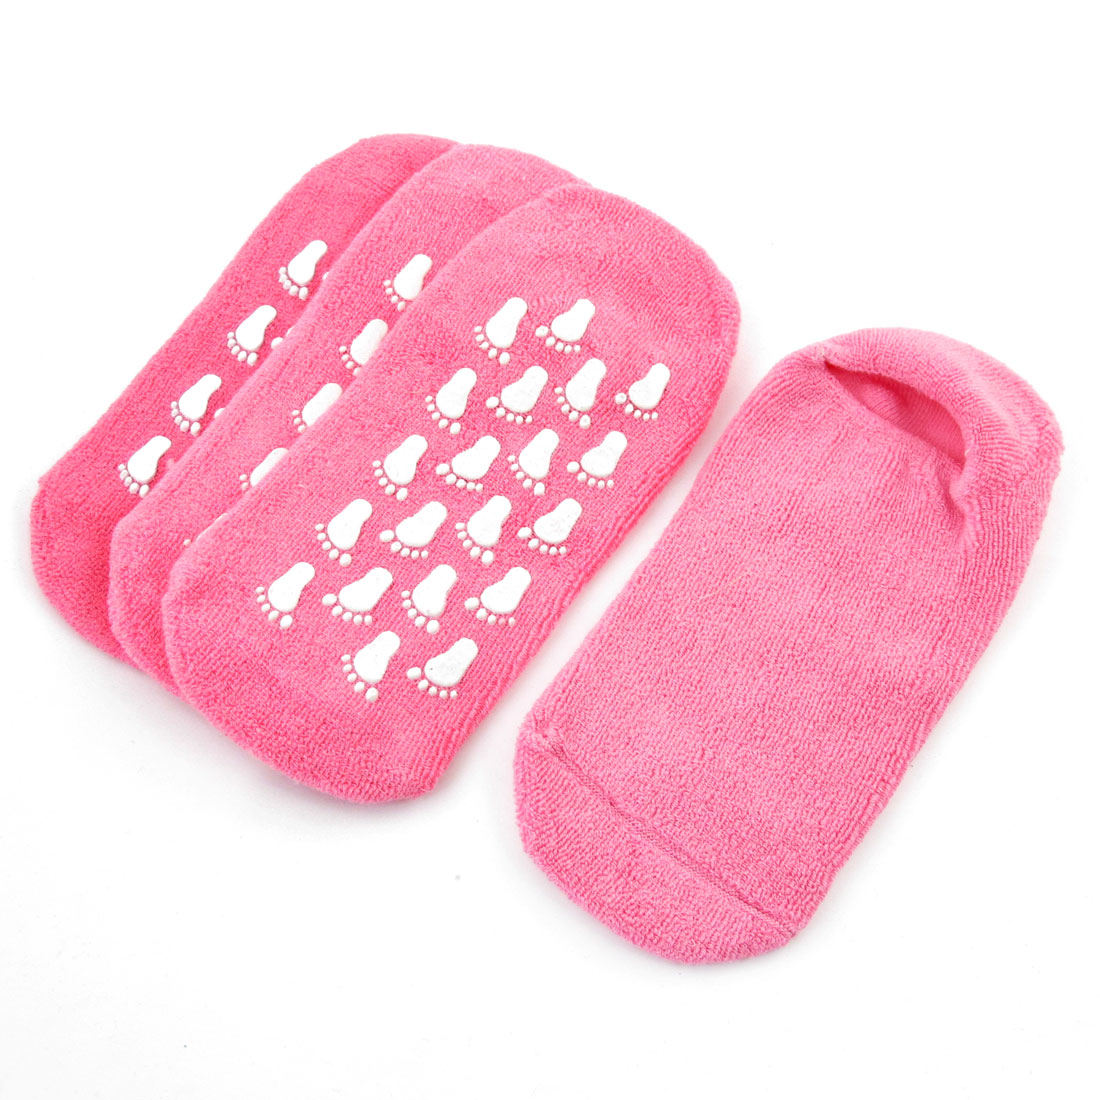 Ladies Pink Footprint Pattern Nonslip Sole Elastic Ankle Floor Socks 2 Pairs